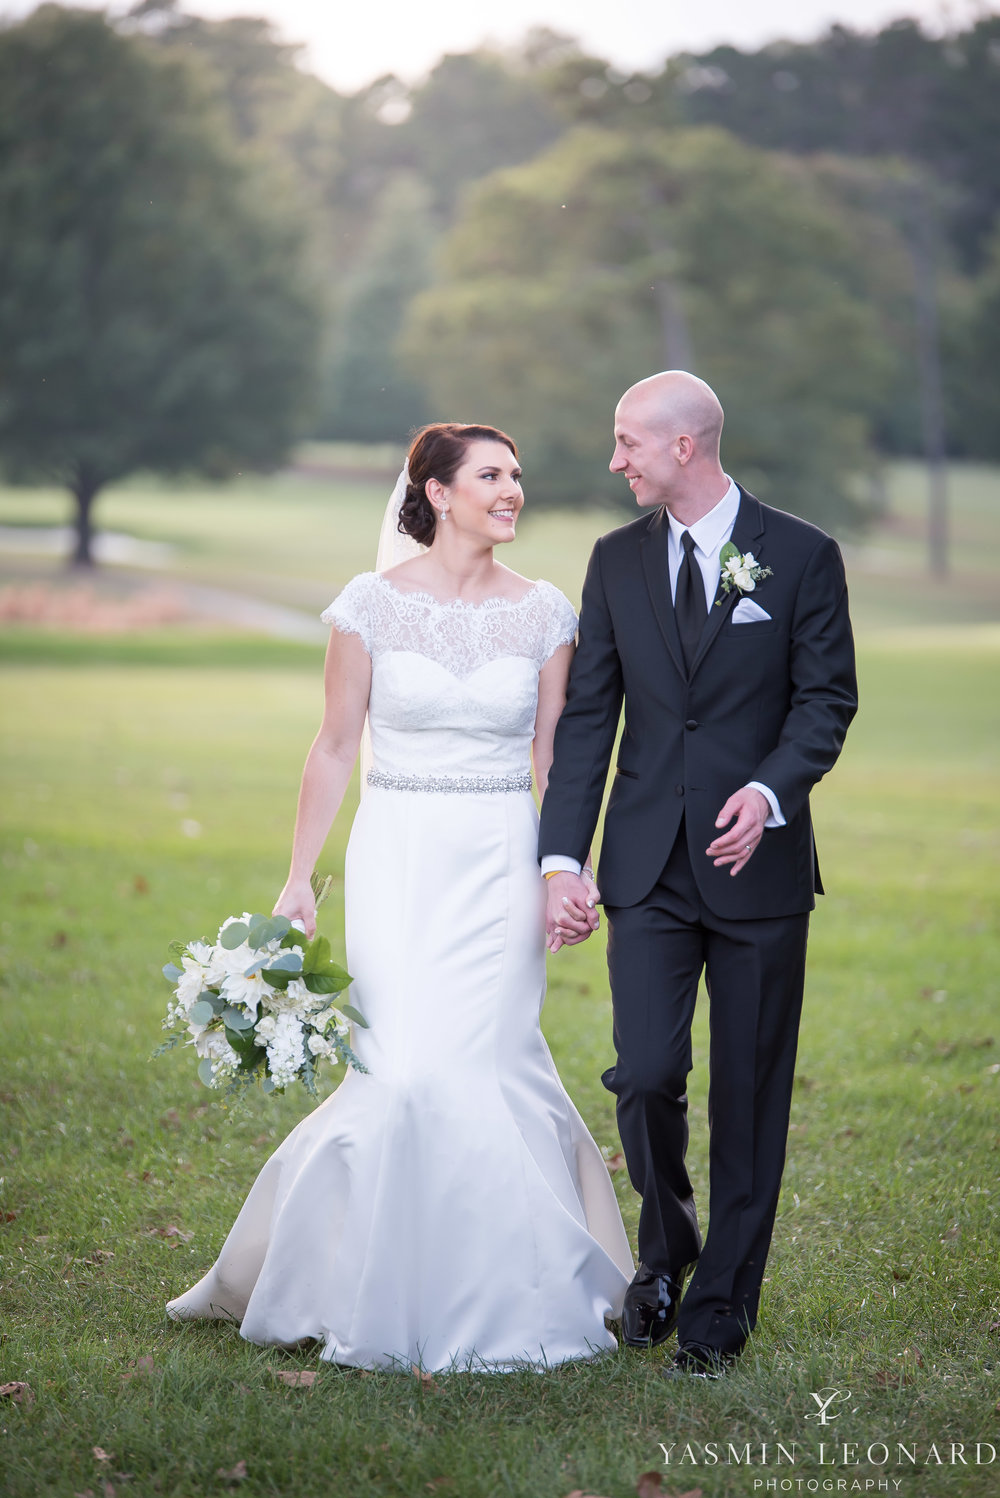 Forsyth Country Club - Winston Salem, NC - NC Wedding Photographer - Winston Salem Weddings - Winston Salem Wedding Venues-46.jpg